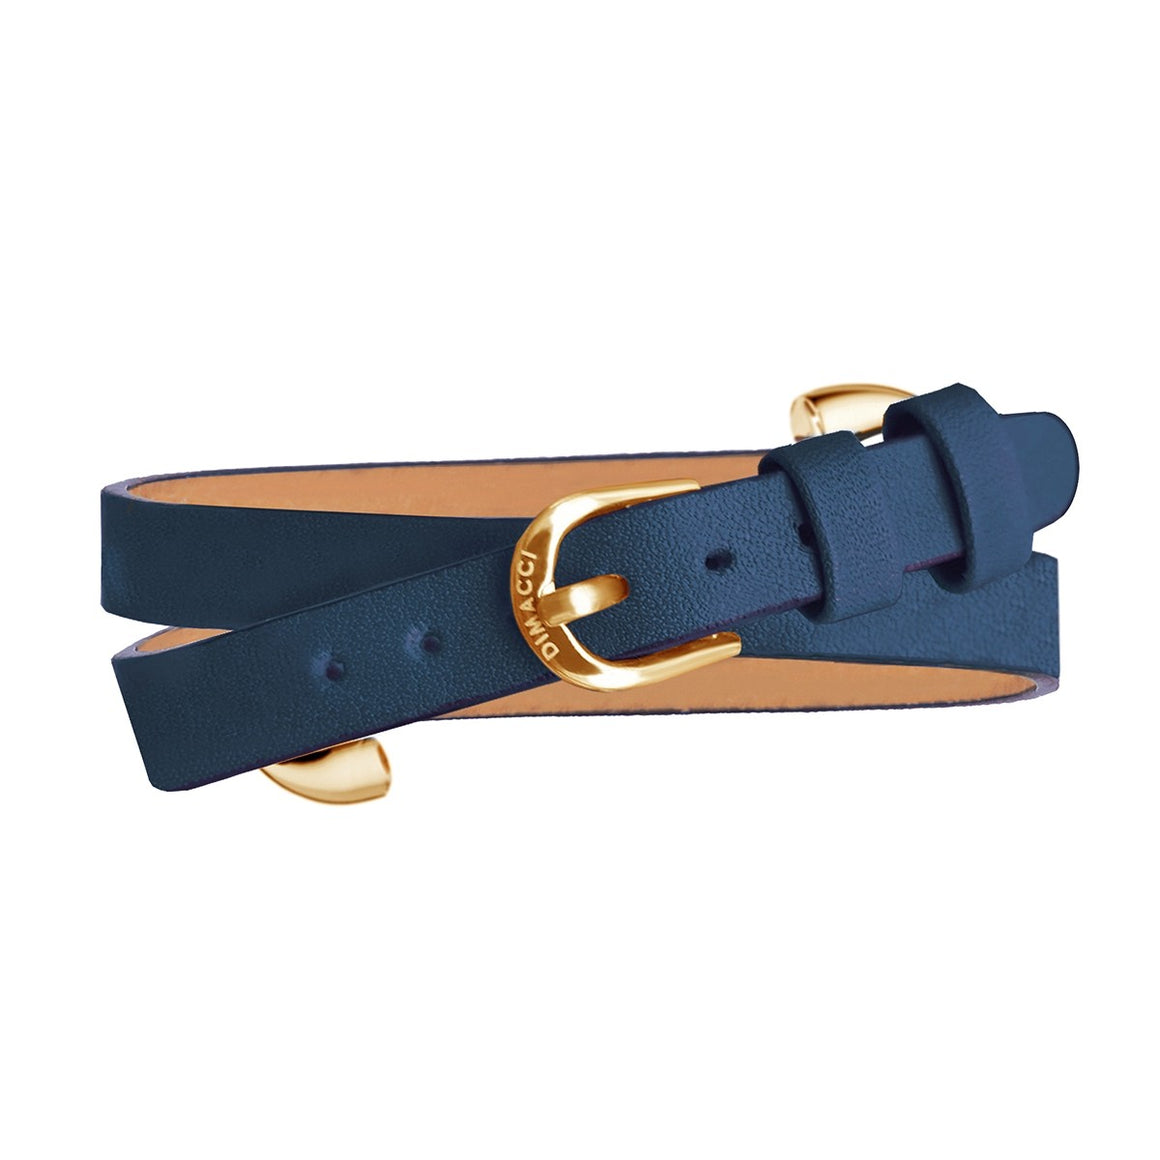 Dimacci Klimke Collection horse bit bracelet in navy blue & gold - RedMillsStore.ie